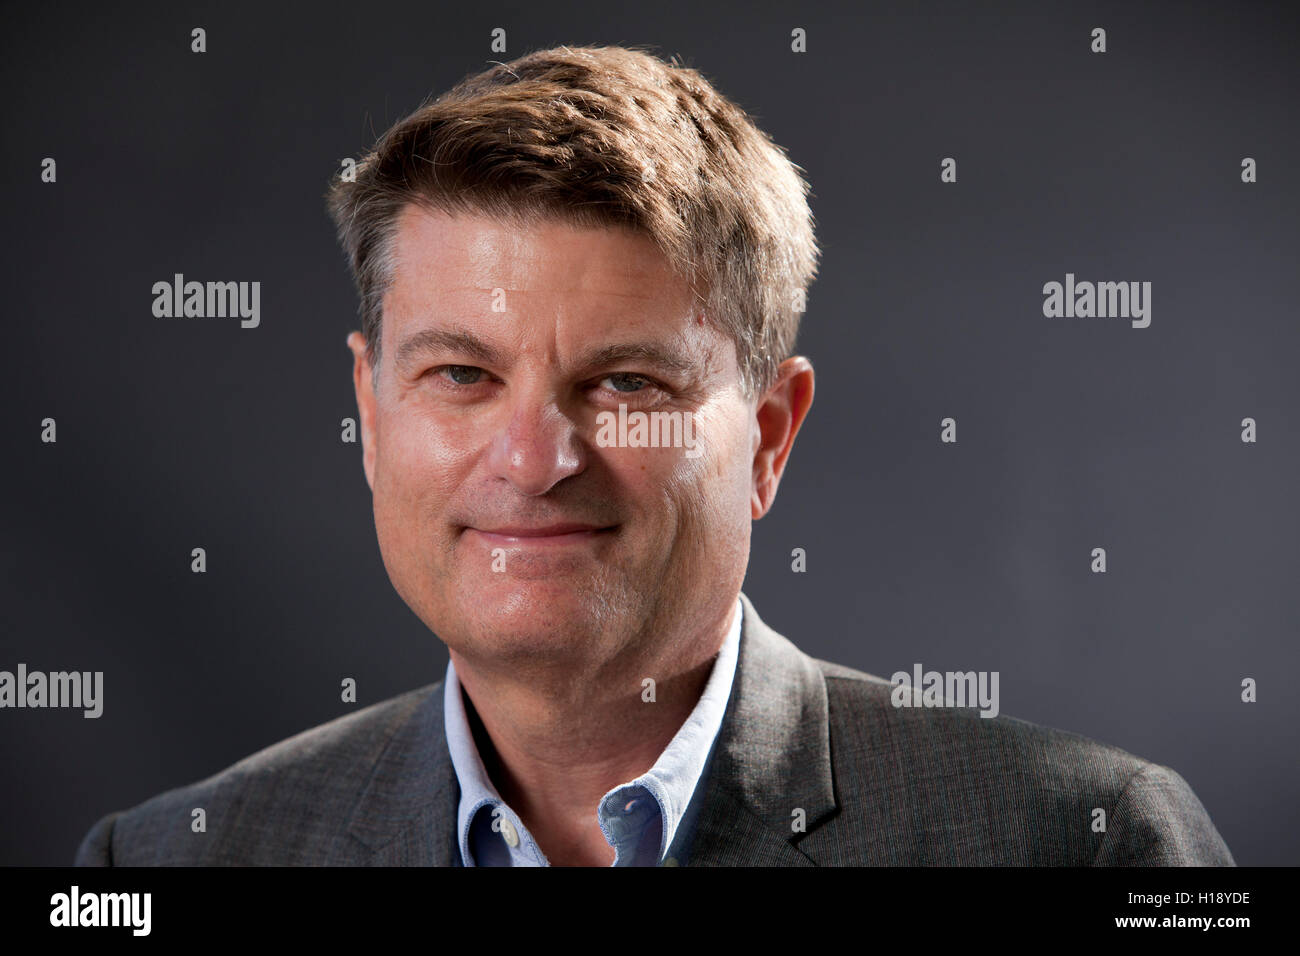 bfca97d60a095 Martin Ford Futurist Author Edinburgh Stock Photos   Martin Ford ...